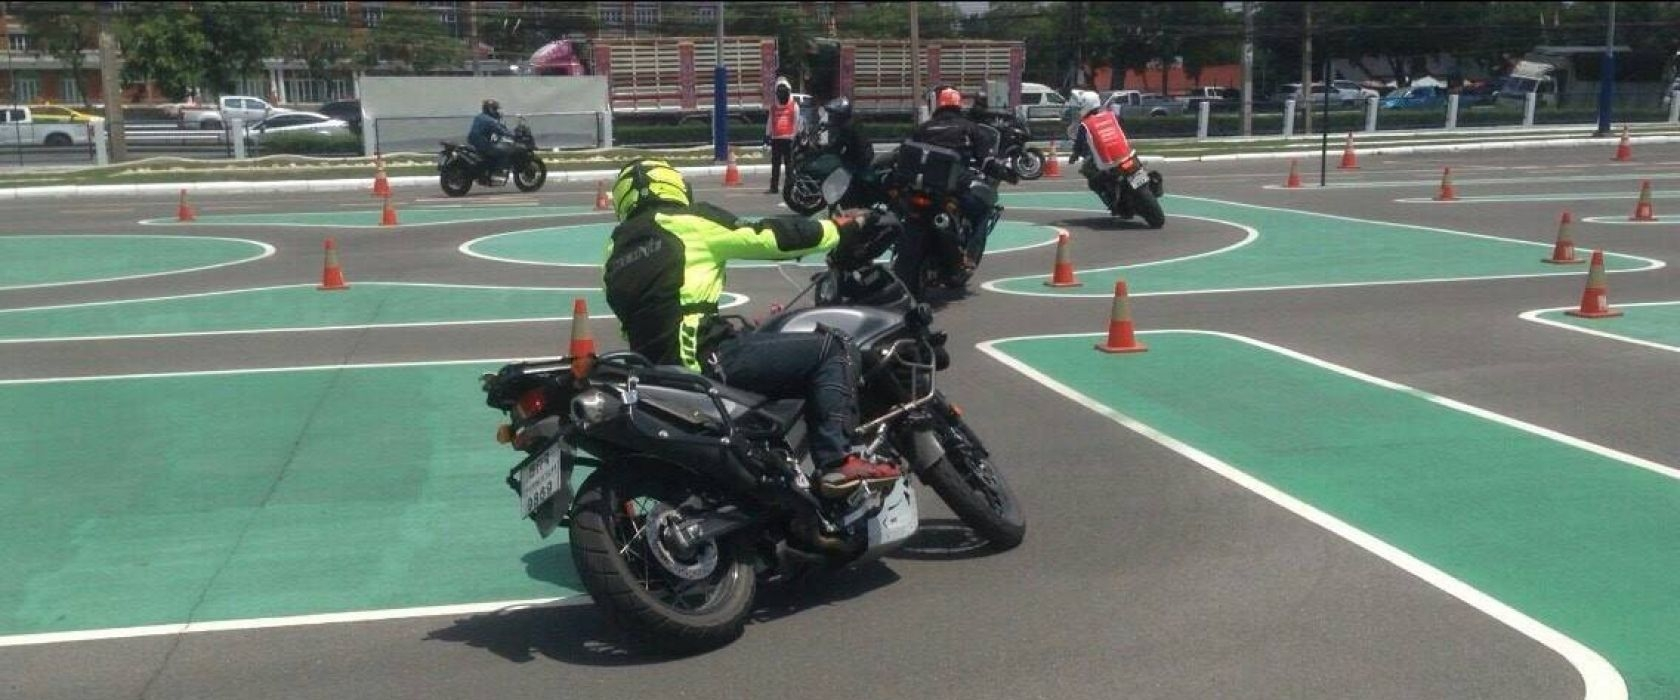 suzuki riding school